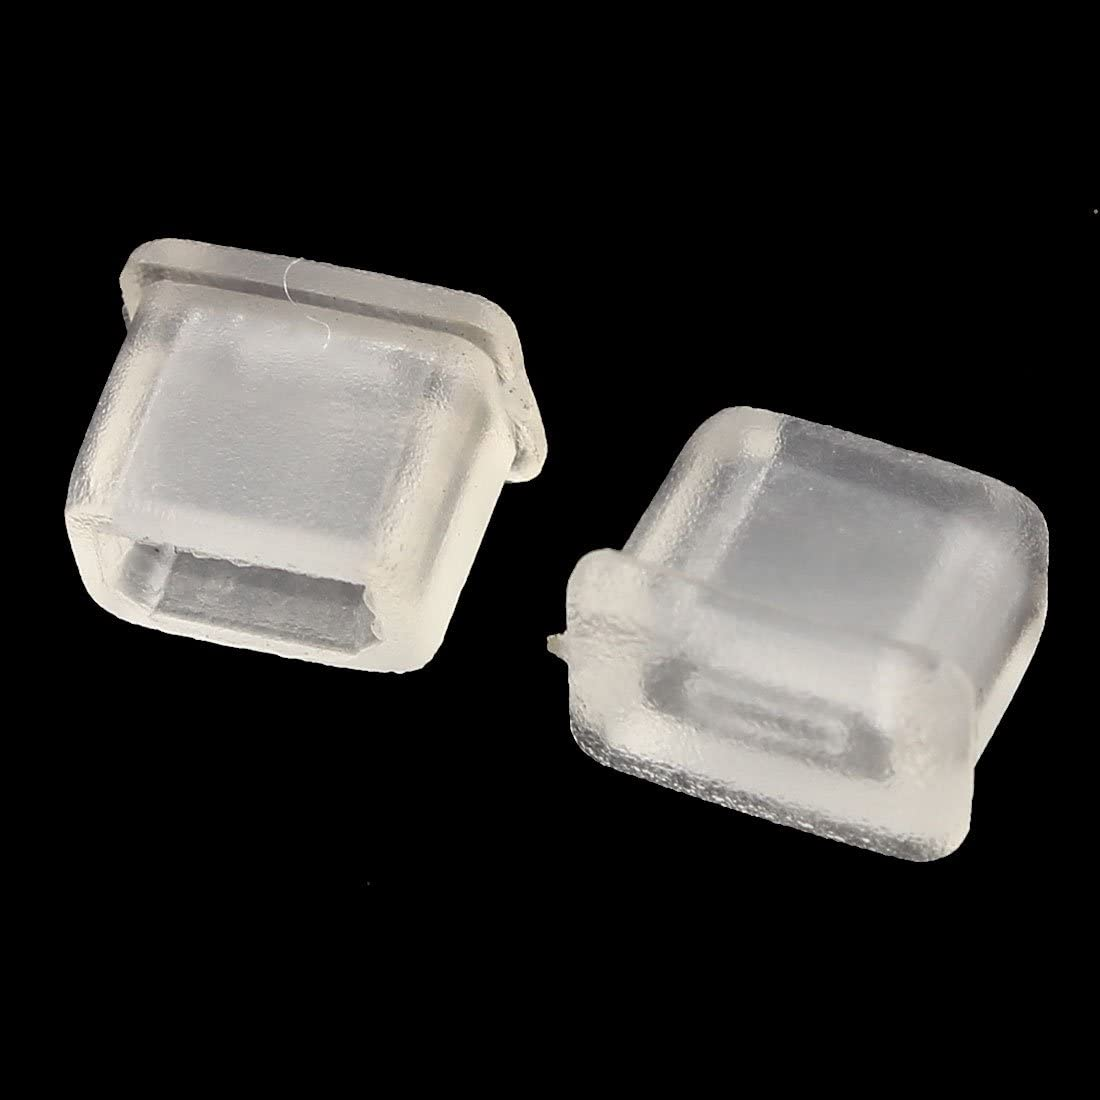 uxcell 10 Pcs Clear Silicone Dust Protector for Micro HDMI Male Port